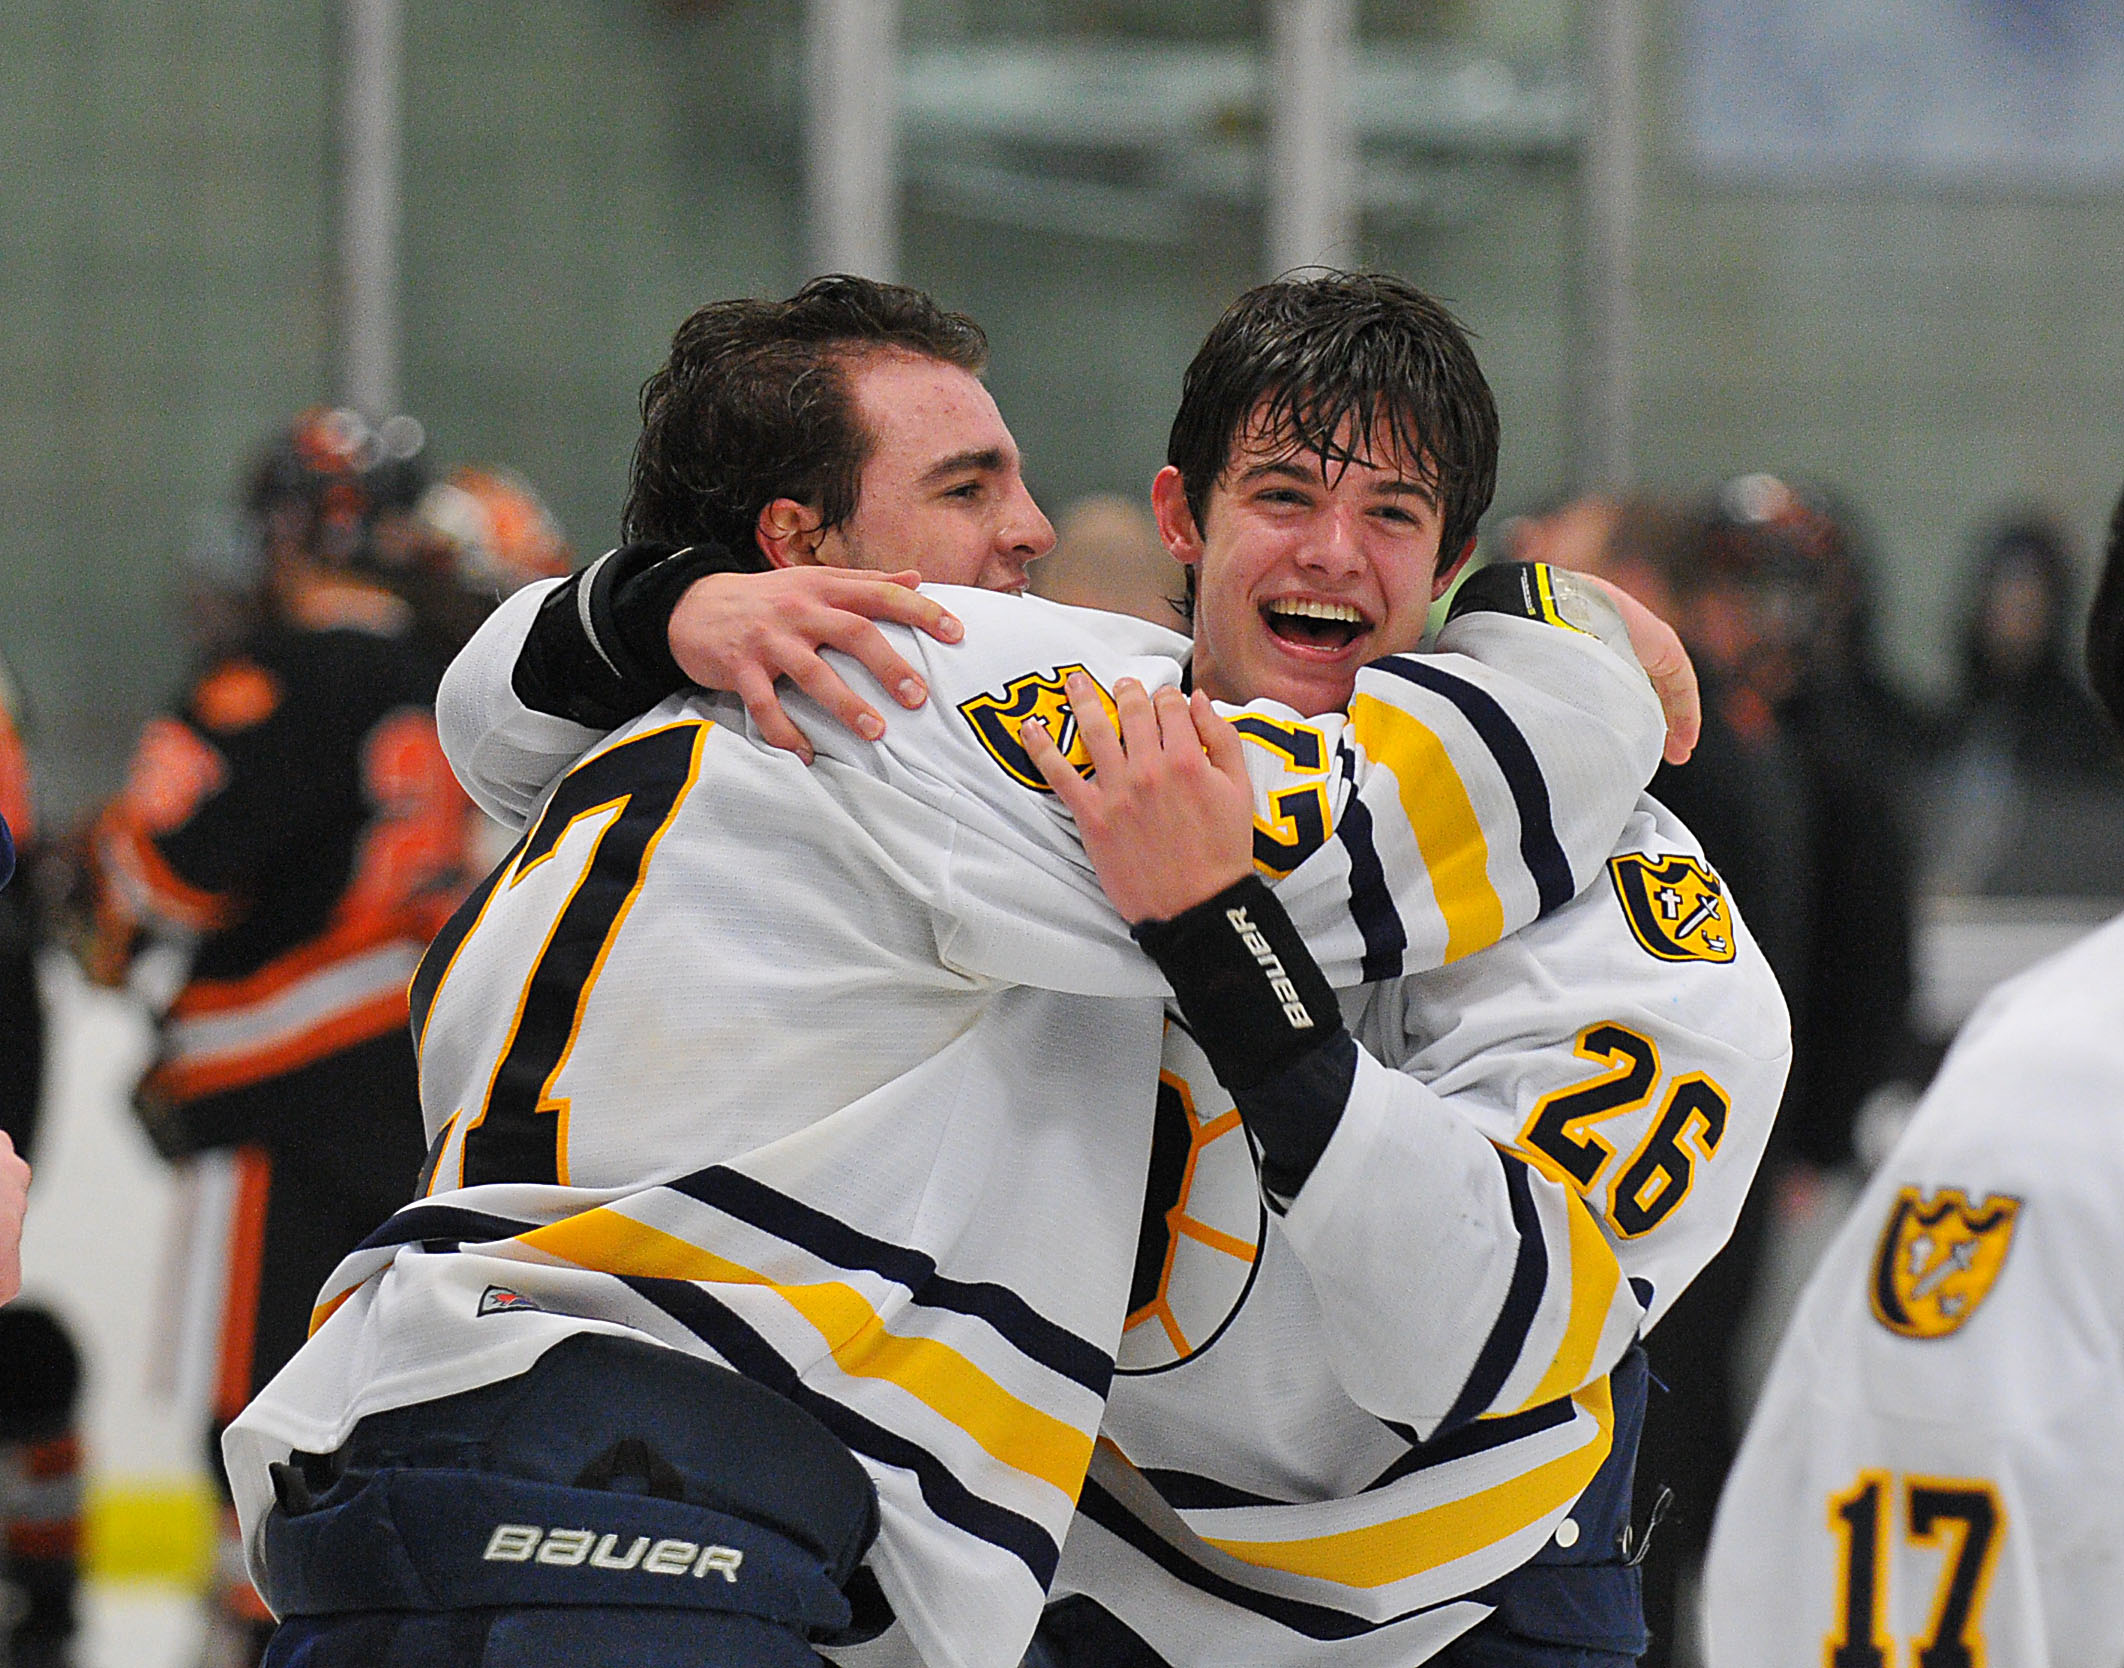 MN H.S.: Class 1A, Section 2 - Breck Defeats Delano 3-2 In Second Overtime